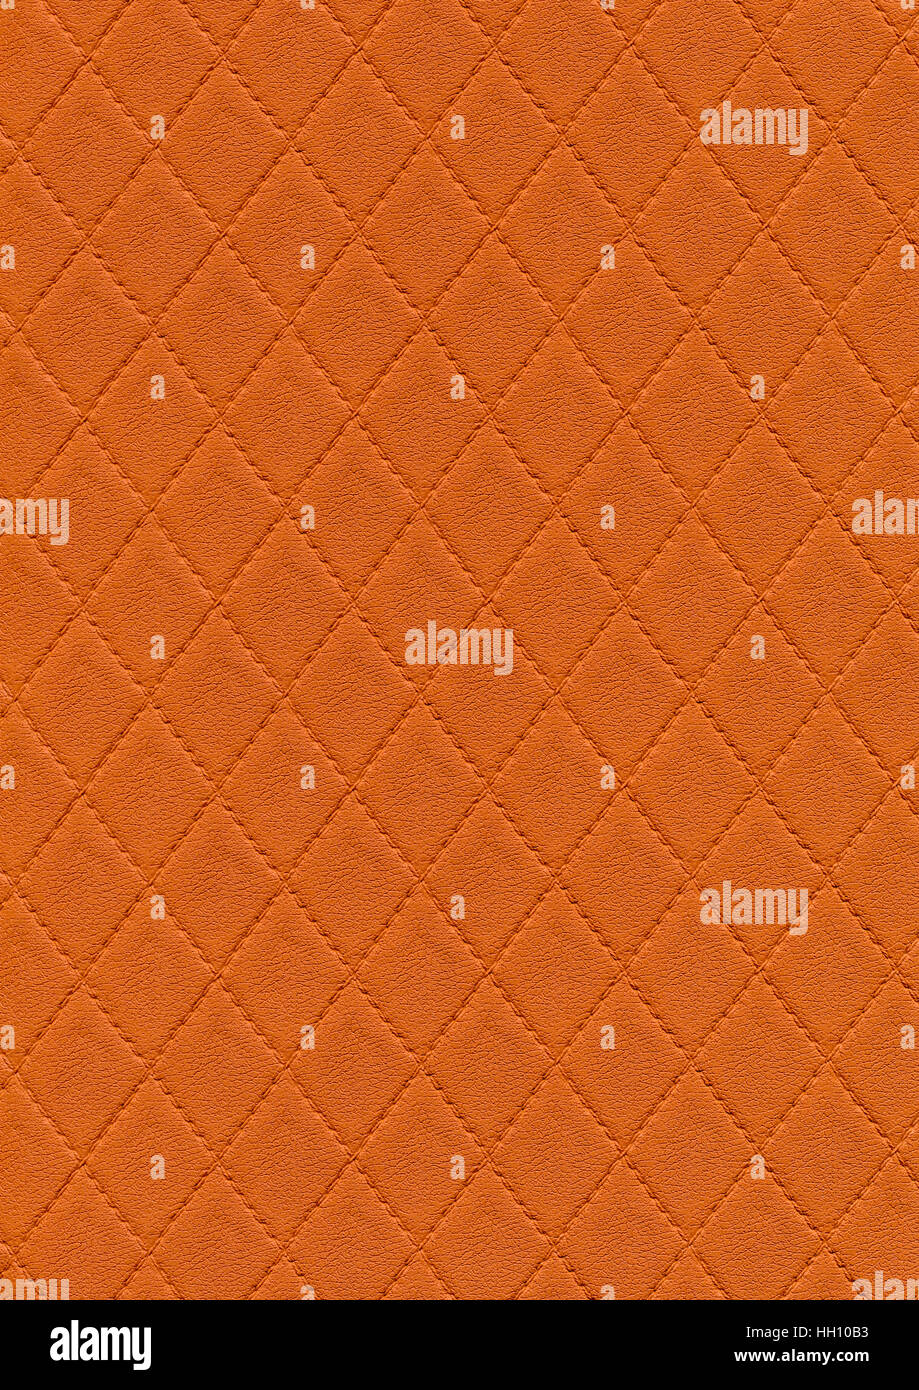 a full frame abstract stitched orange leather background - Stock Image